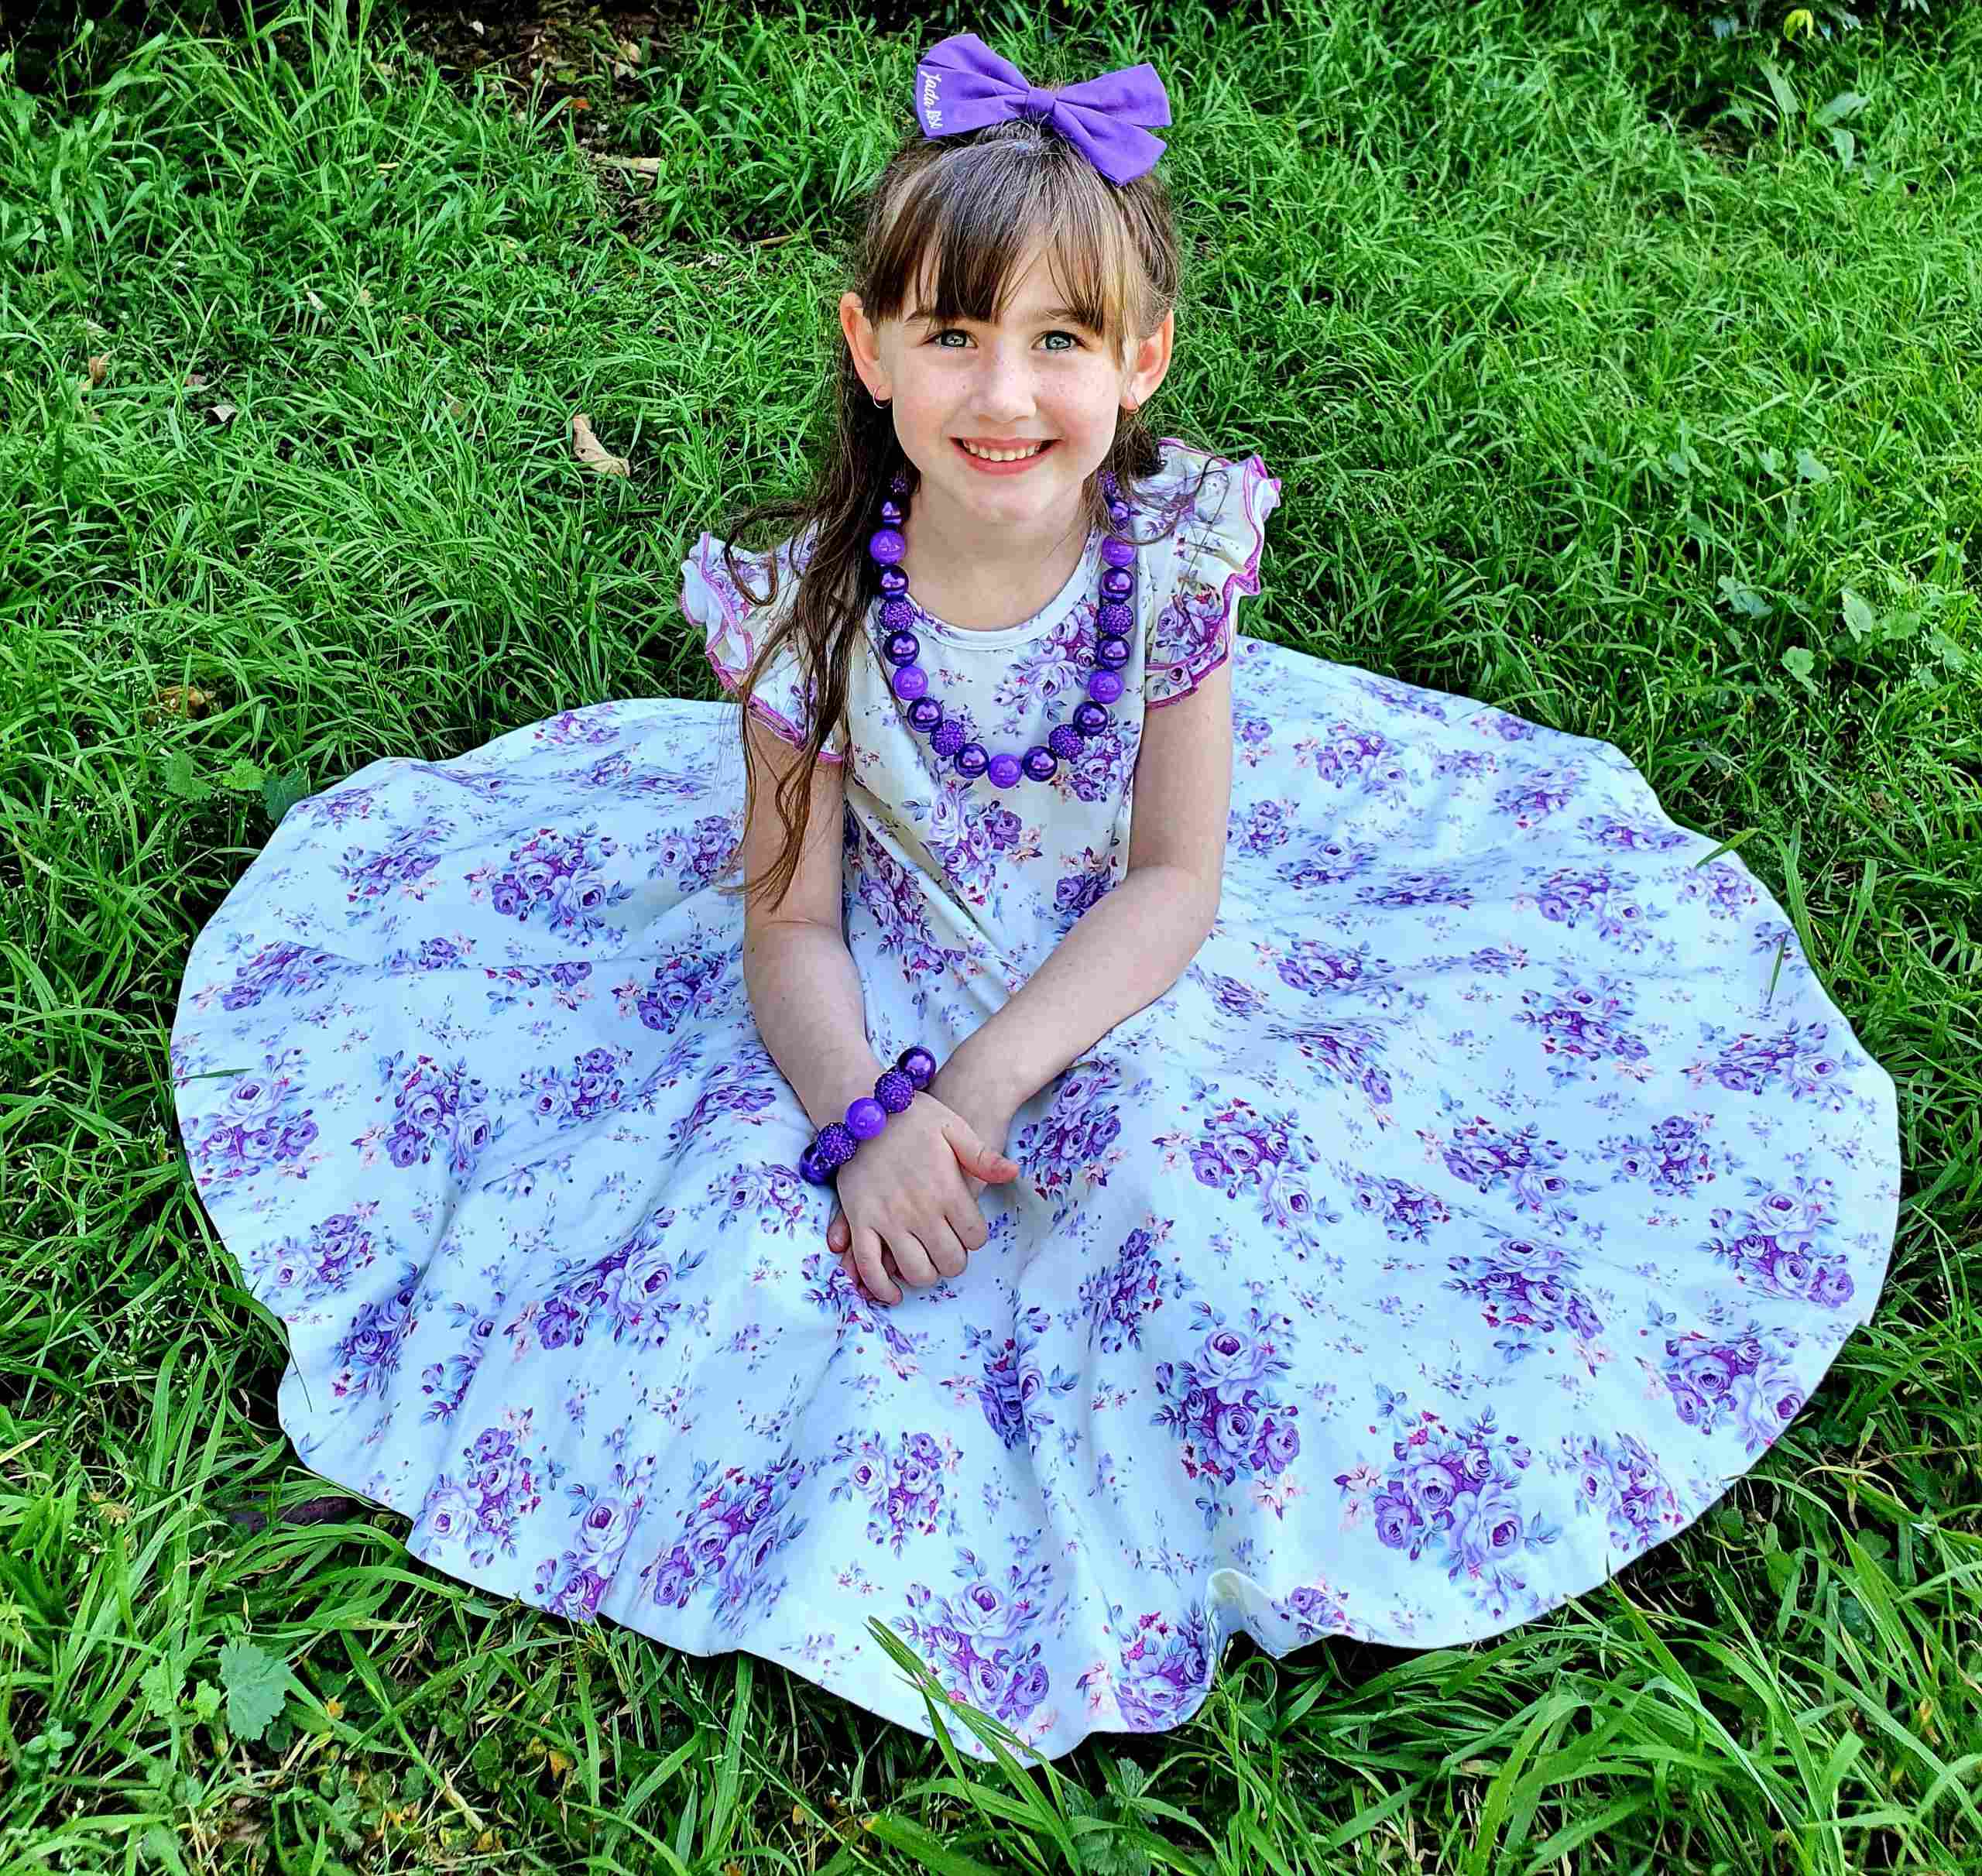 Cute girl wearing twirly dress